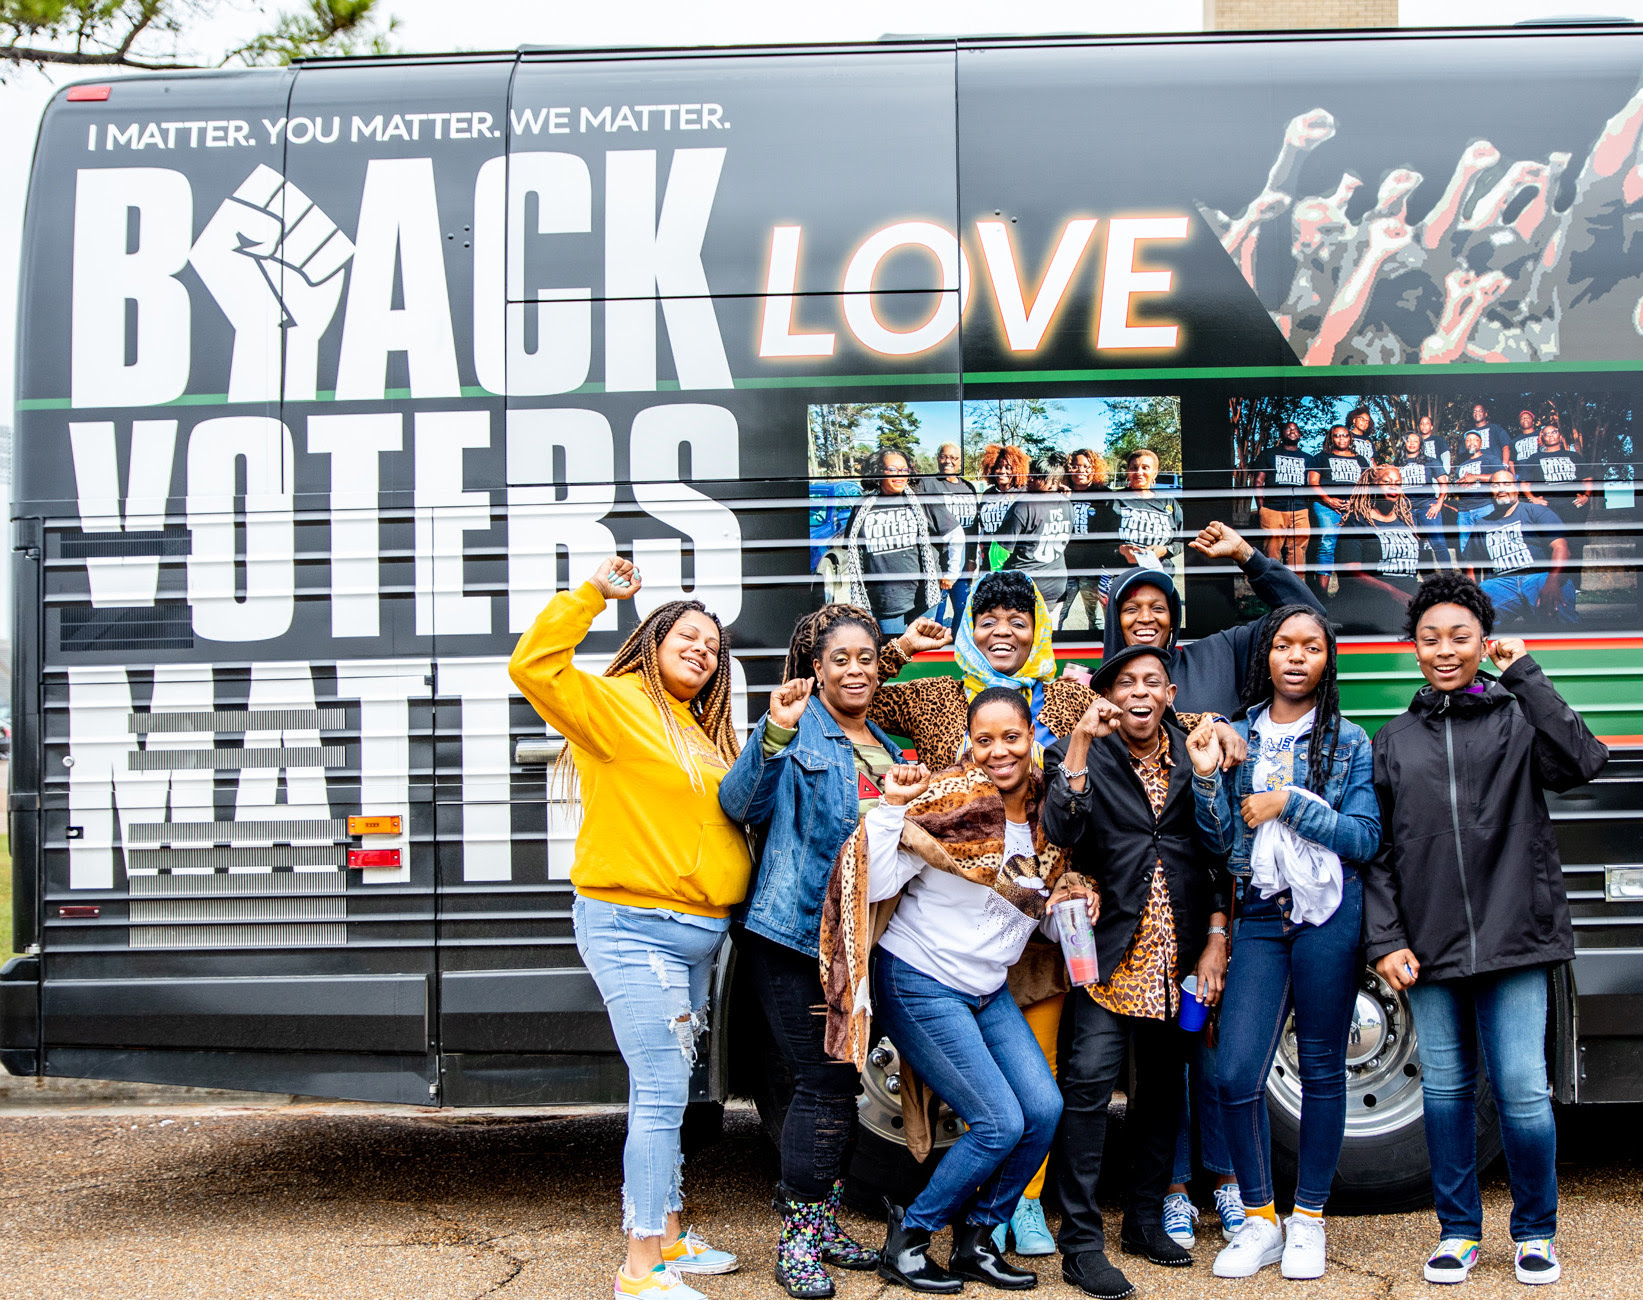 Black Voters Matter uses buses in its community organizing events